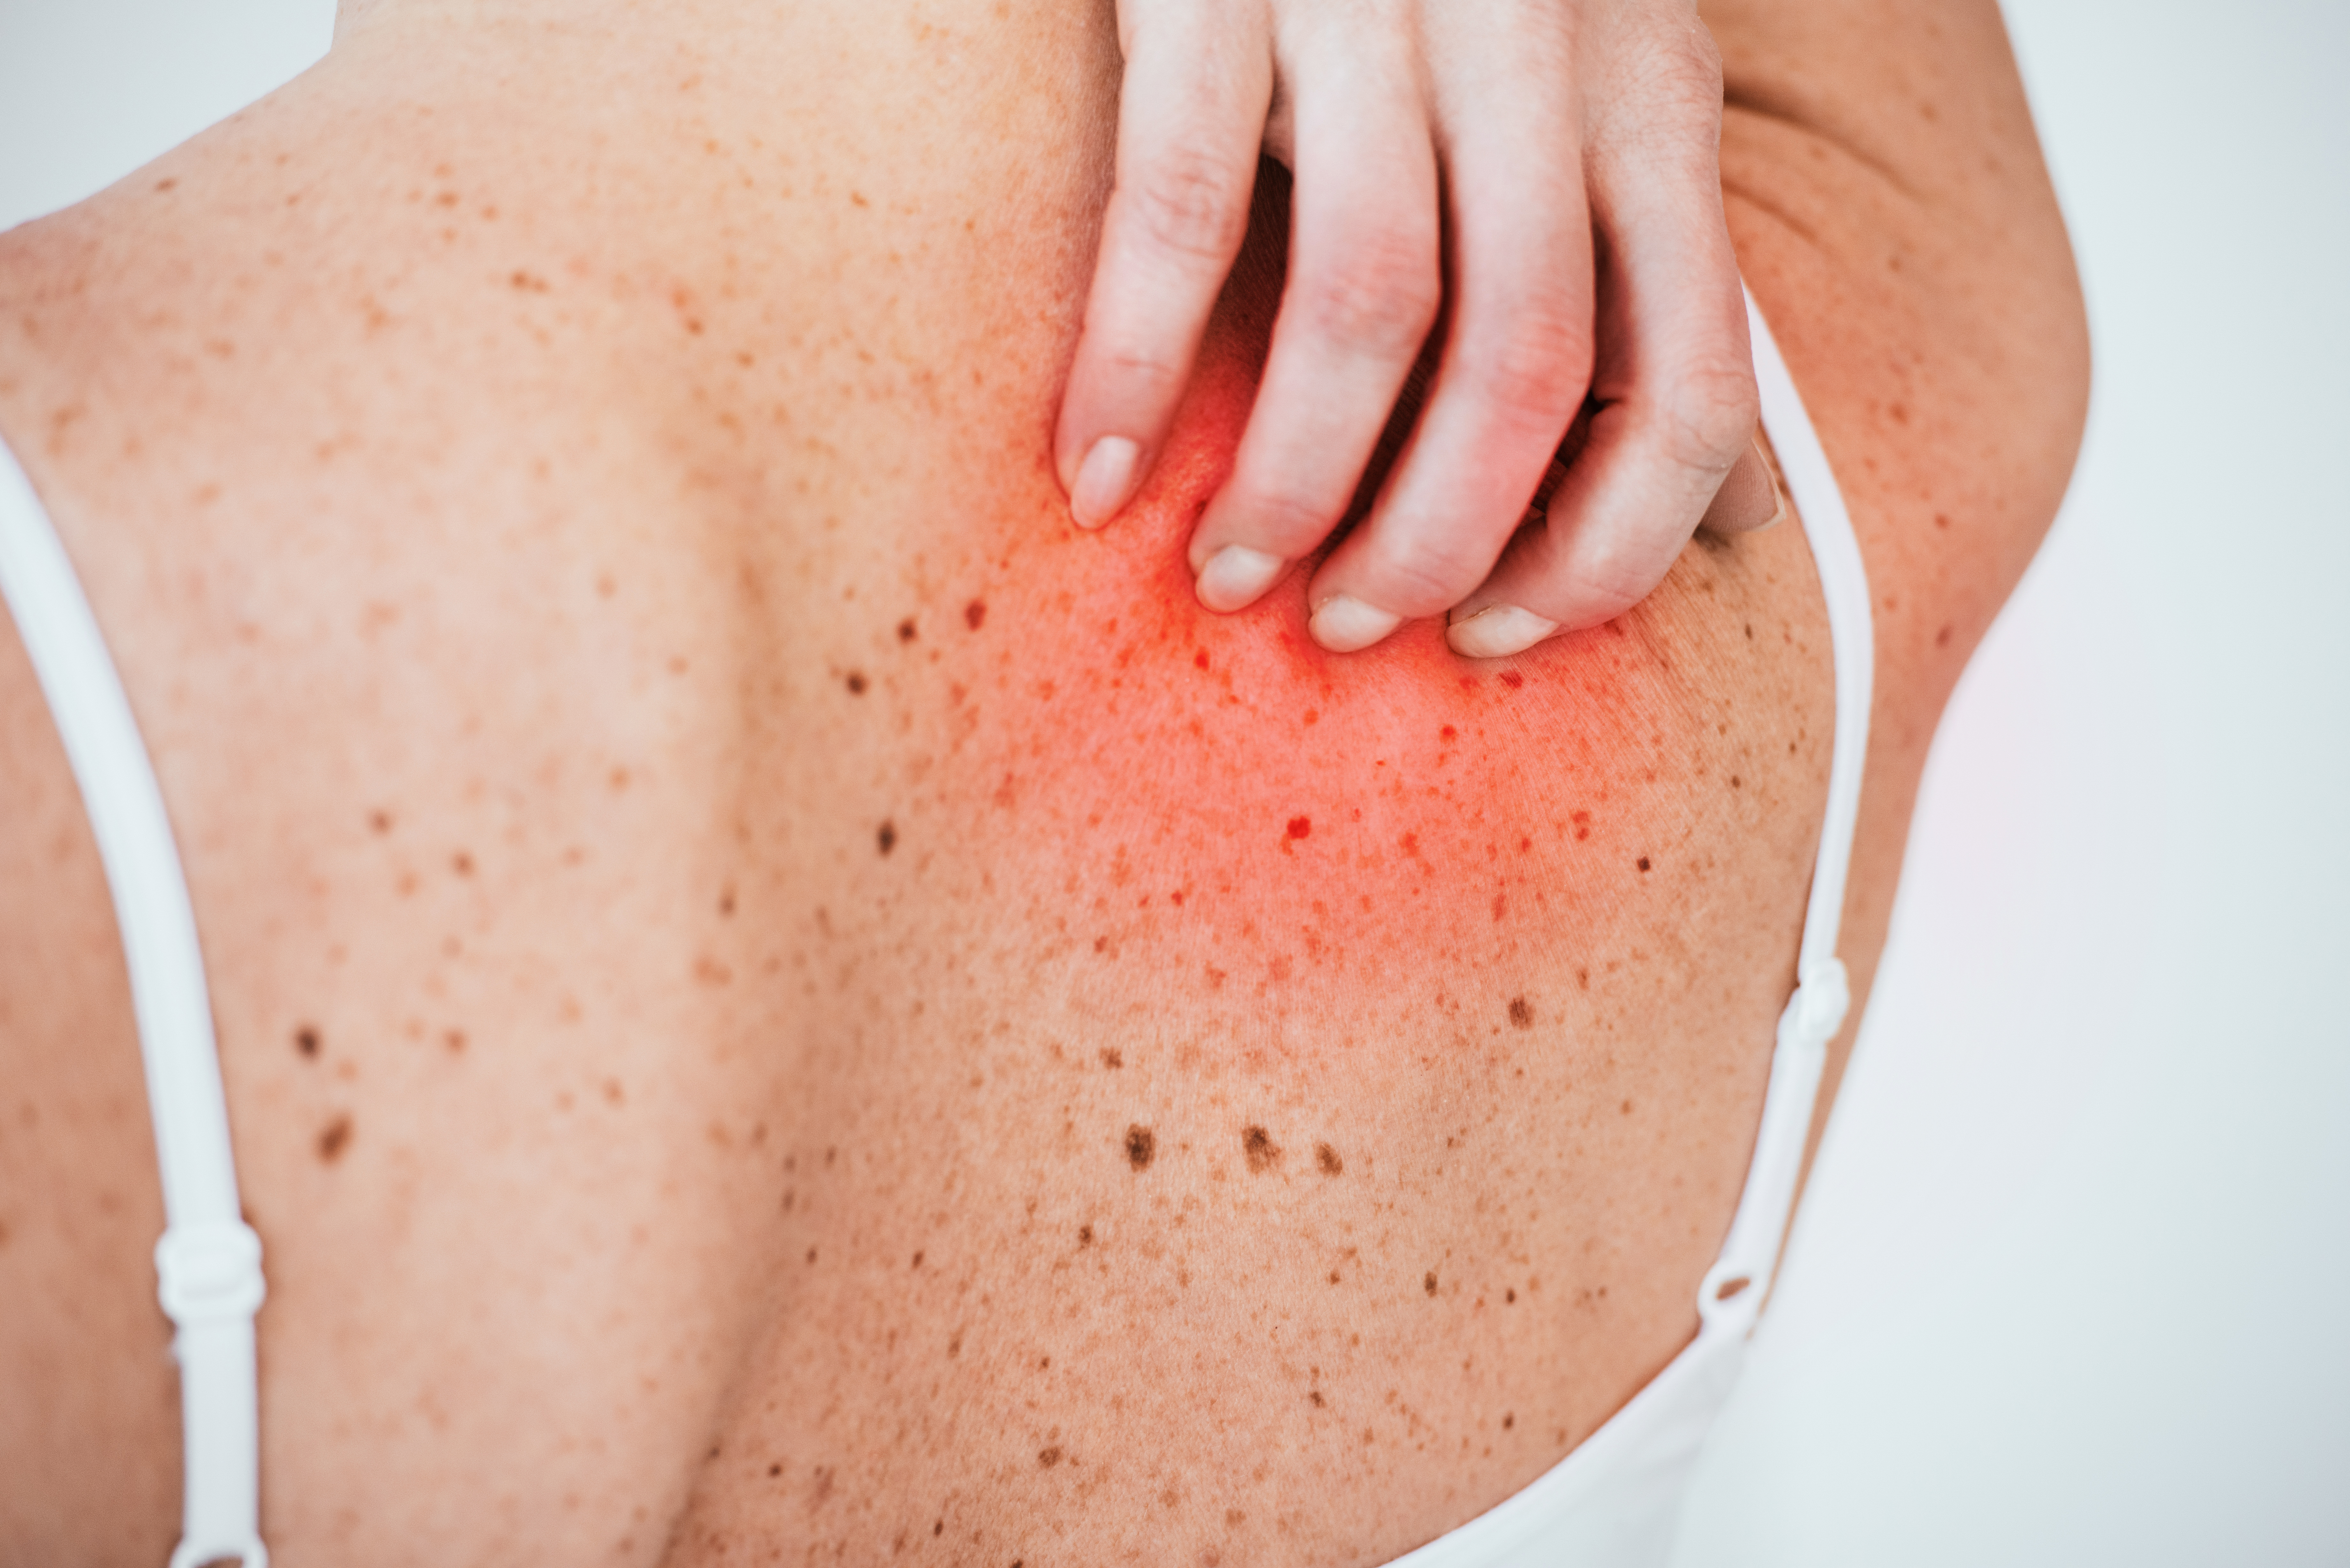 Can You Get Melanoma from Scratching a Mole?